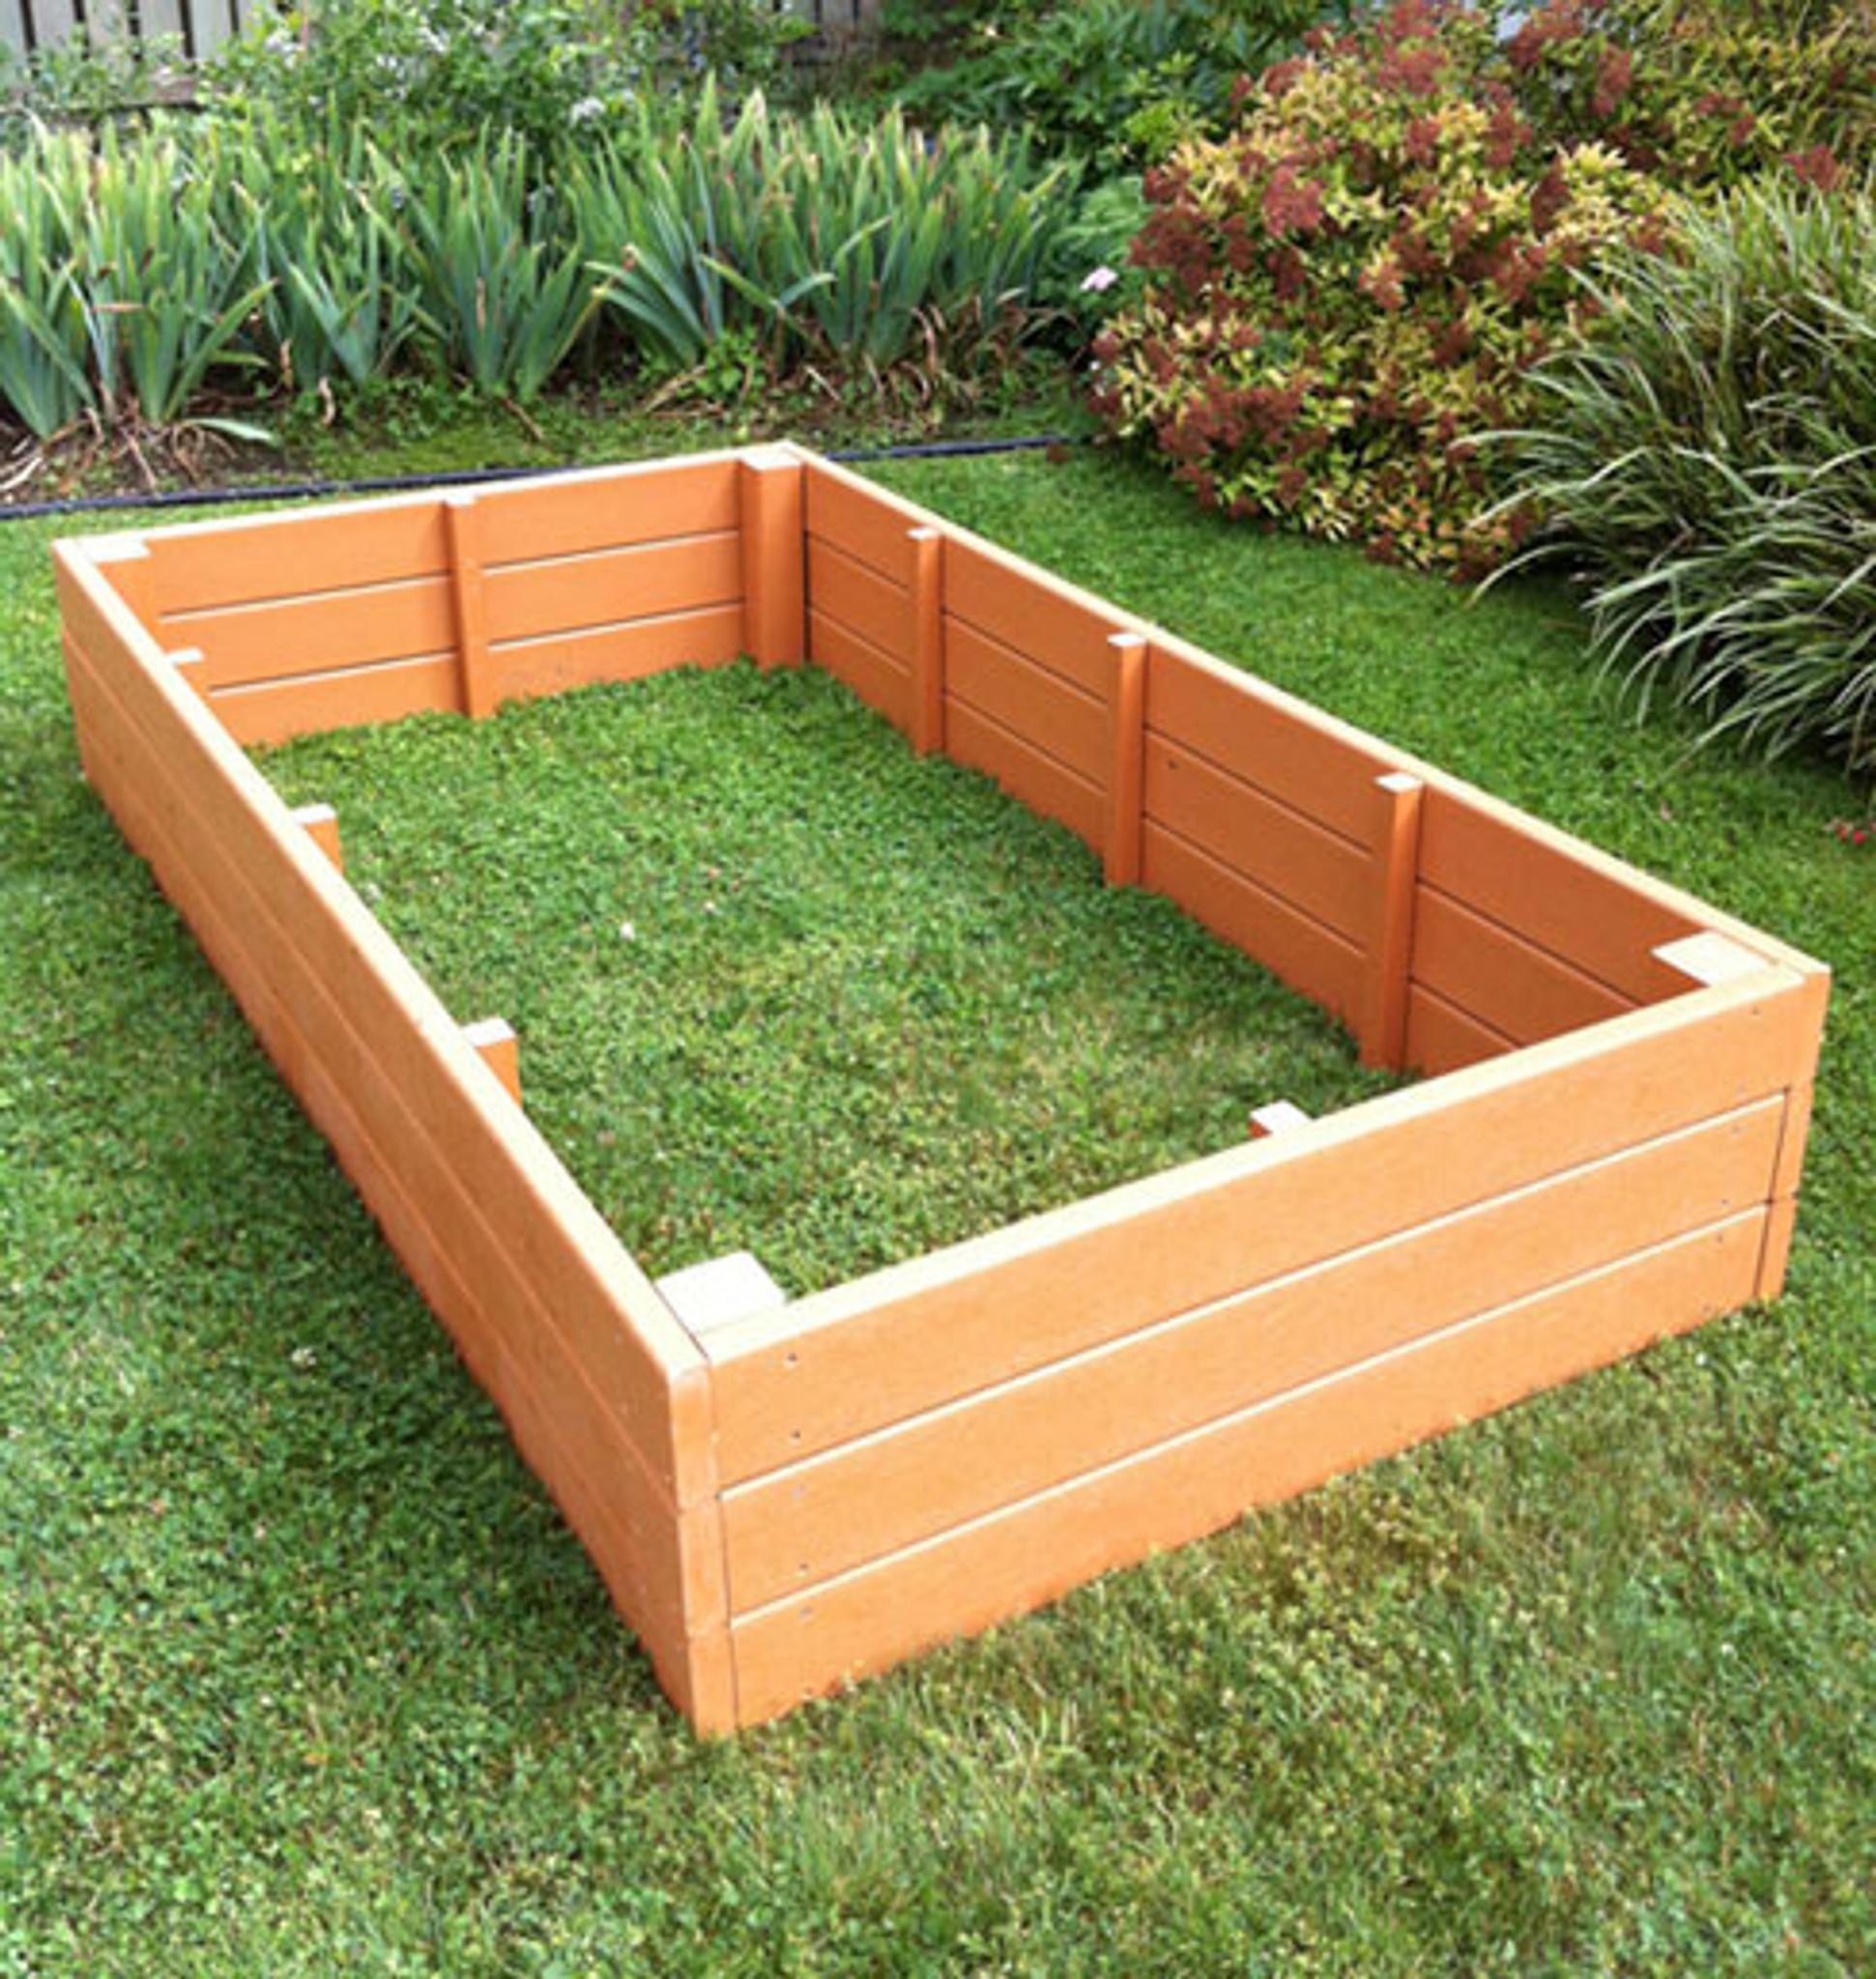 Recycled Plastic Raised Garden Bed 3 X 8 X 11 Eartheasy Com